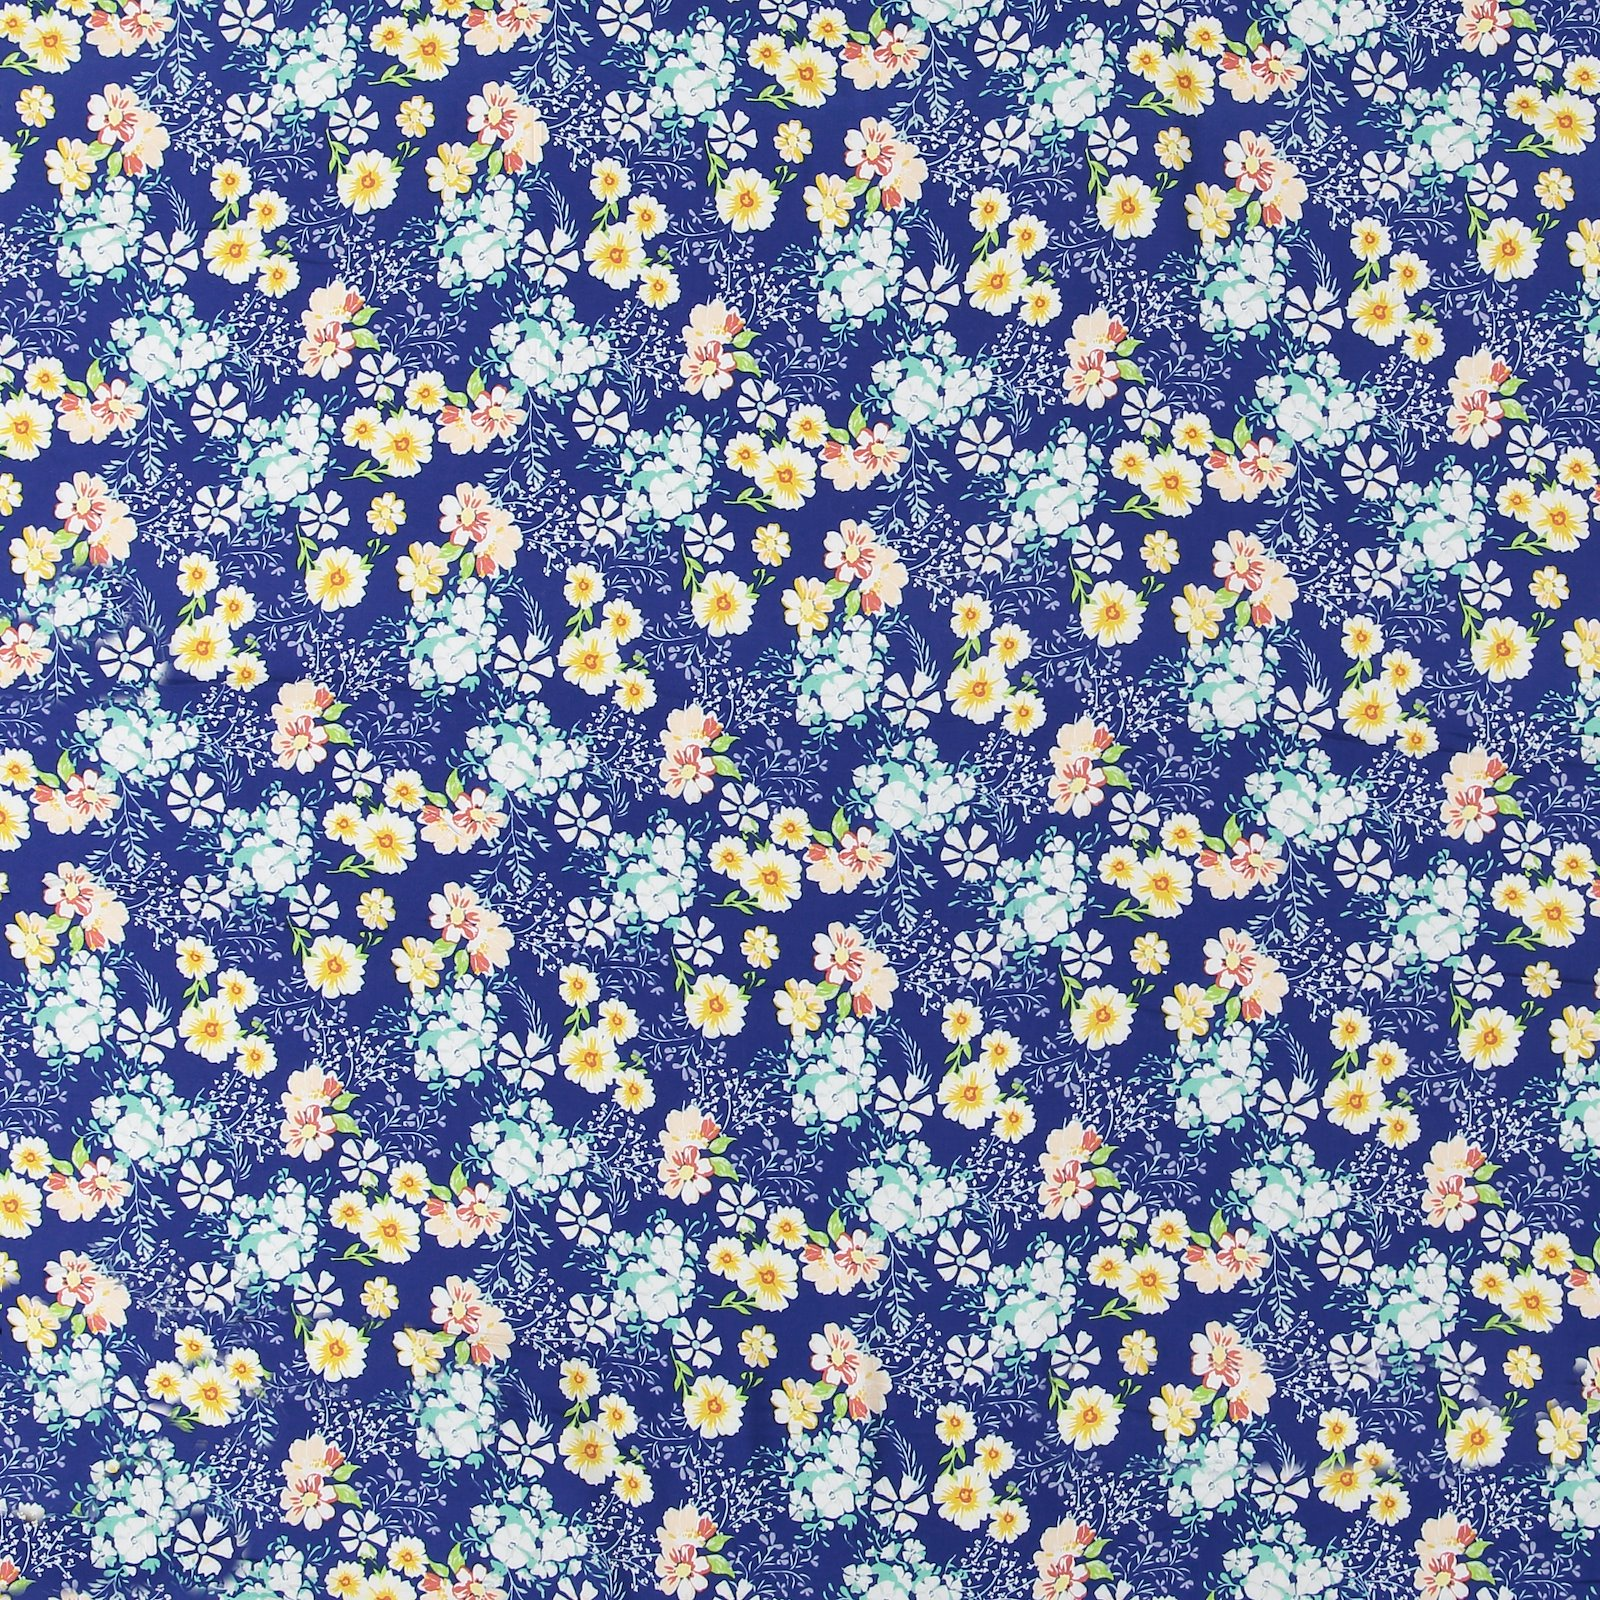 Woven viscose navy with flowers 710585_pack_sp